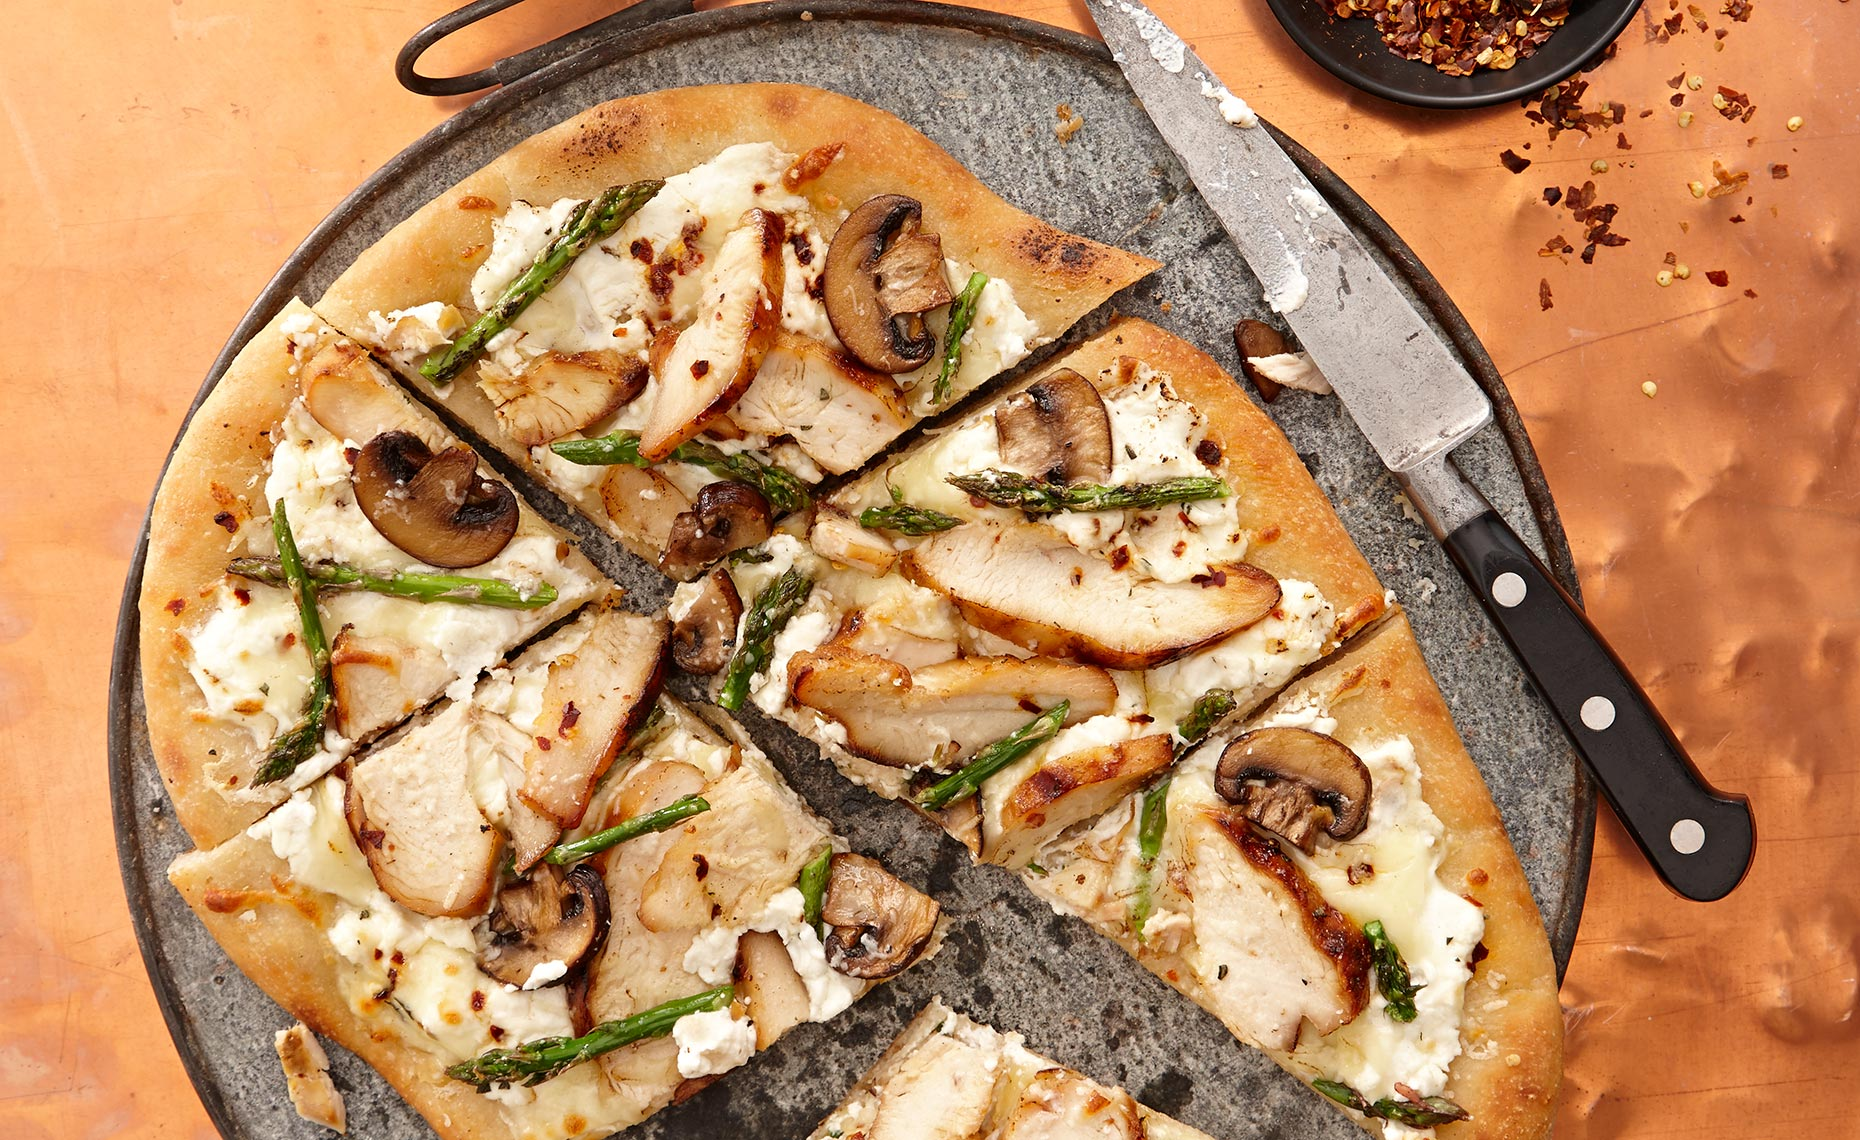 Fast Food Photographer, Burger Photography, Pizza Photography | Pohuski Studios,  Grilled Chicken Pizza